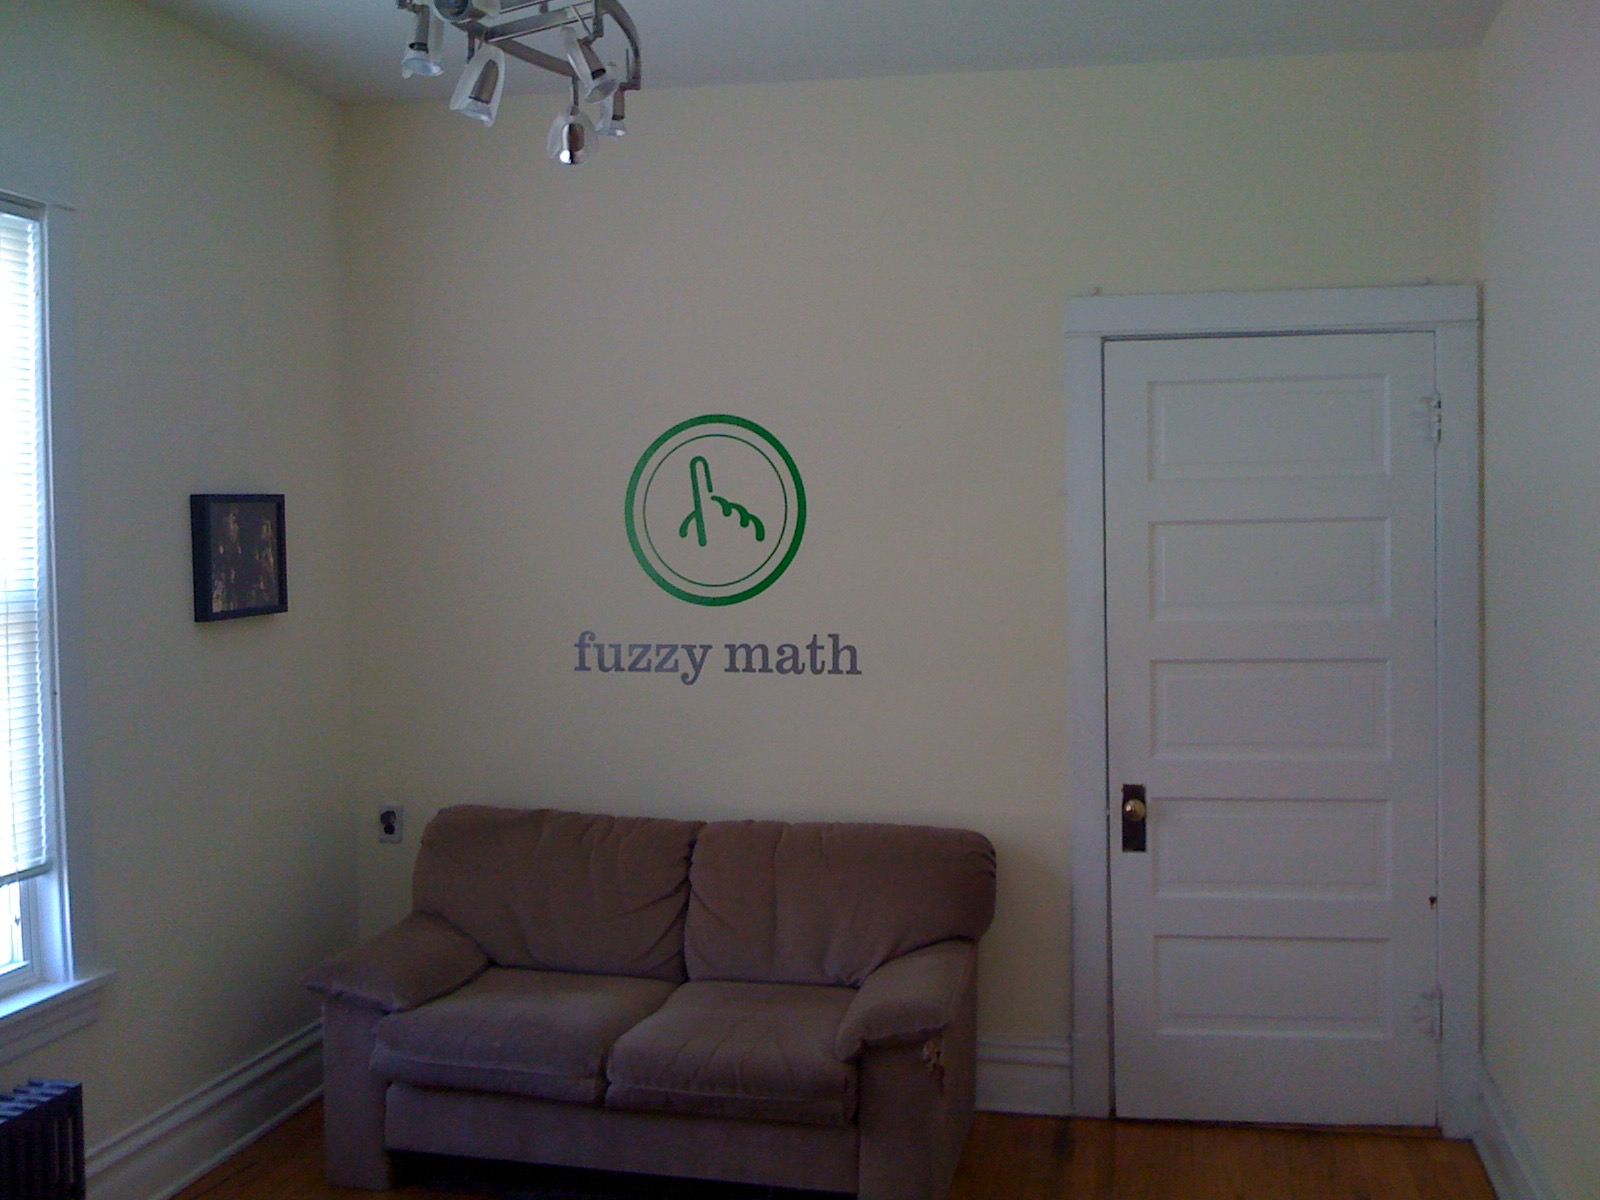 A small room with a couch, window, door, and Fuzzy Math logo on the wall.